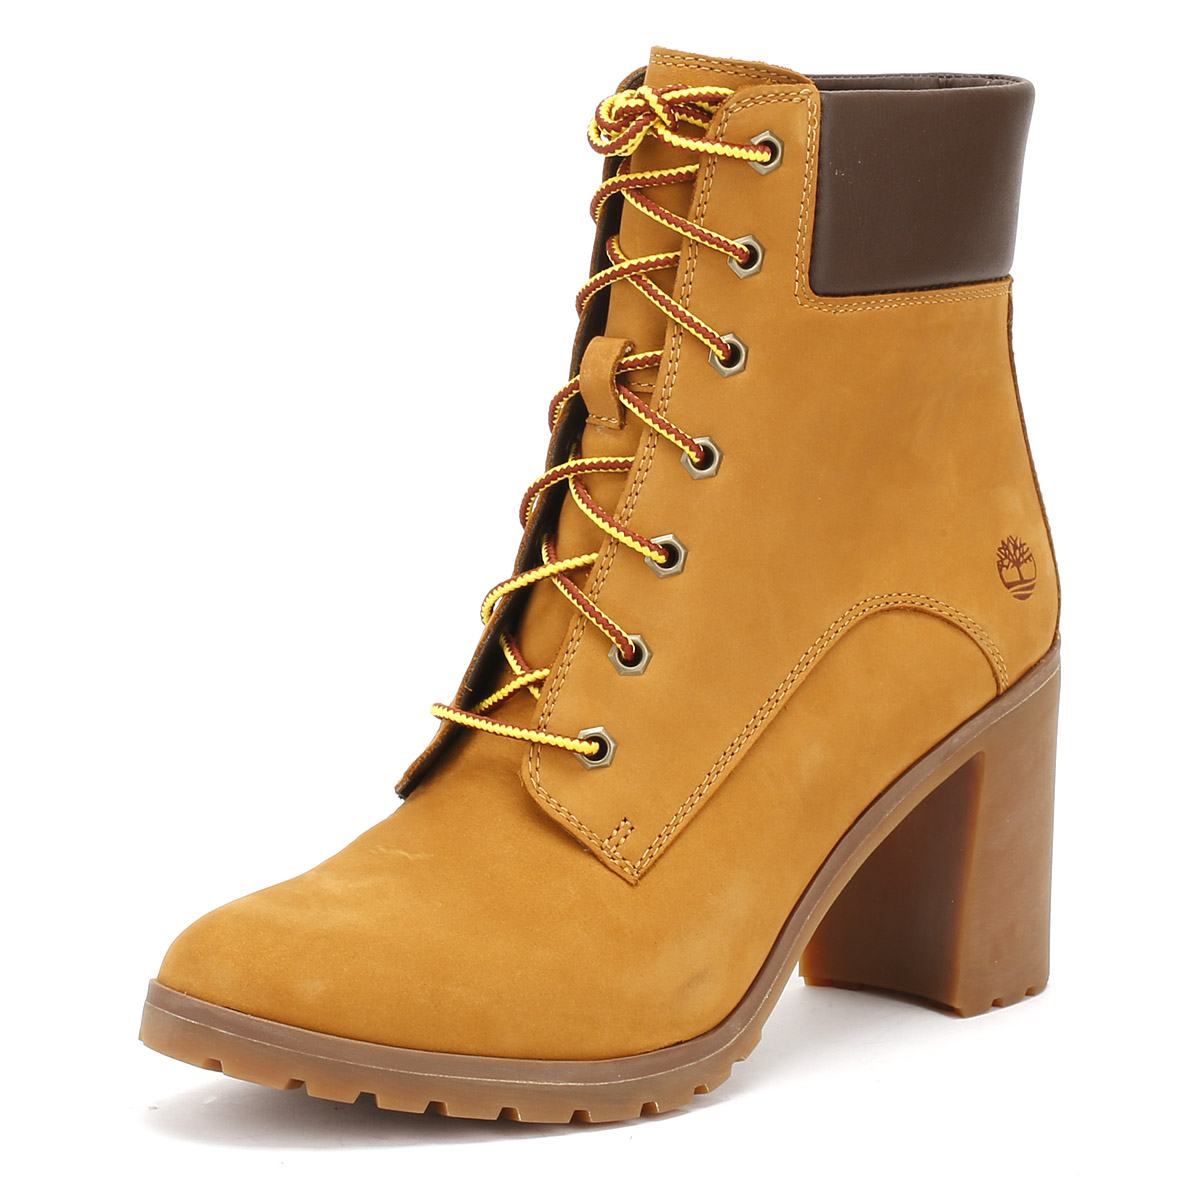 e262103ade4d Timberland Womens Wheat Yellow Allington 6 Inch Boots Leather Mid Heel Shoes